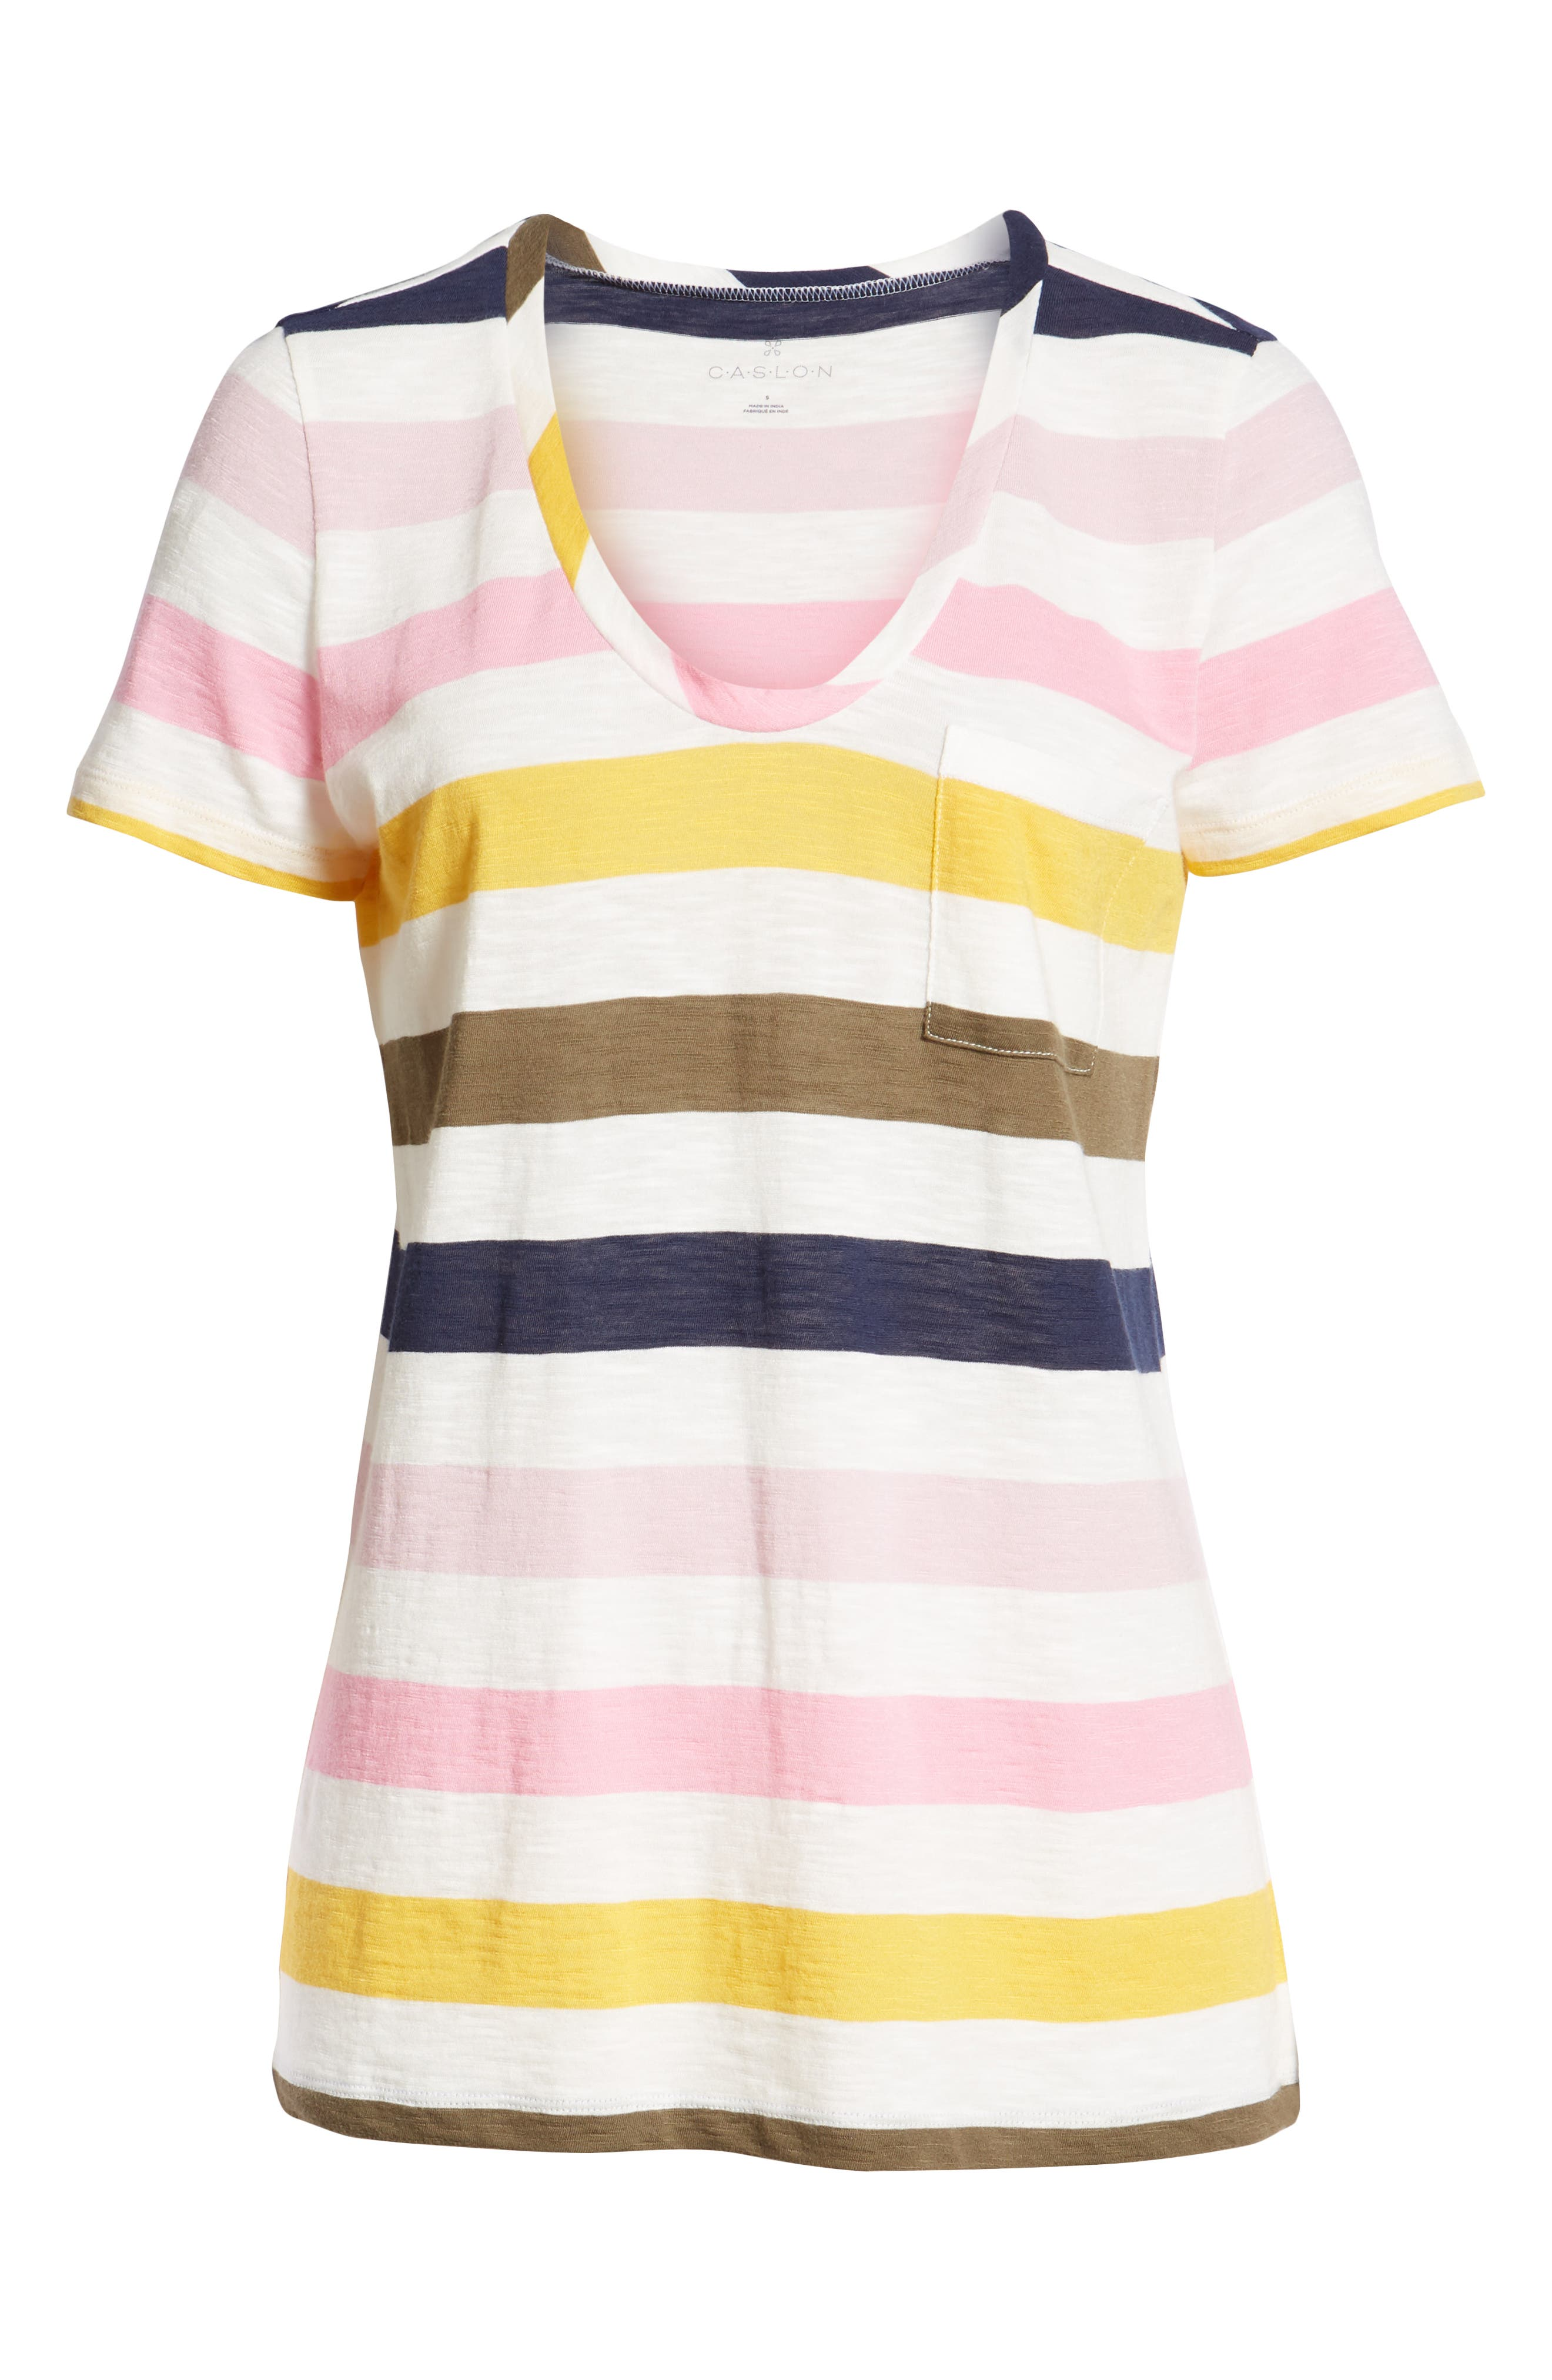 CASLON<SUP>®</SUP>,                             Rounded V-Neck Tee,                             Alternate thumbnail 7, color,                             PINK S- NAVY P NOMAD STRIPE